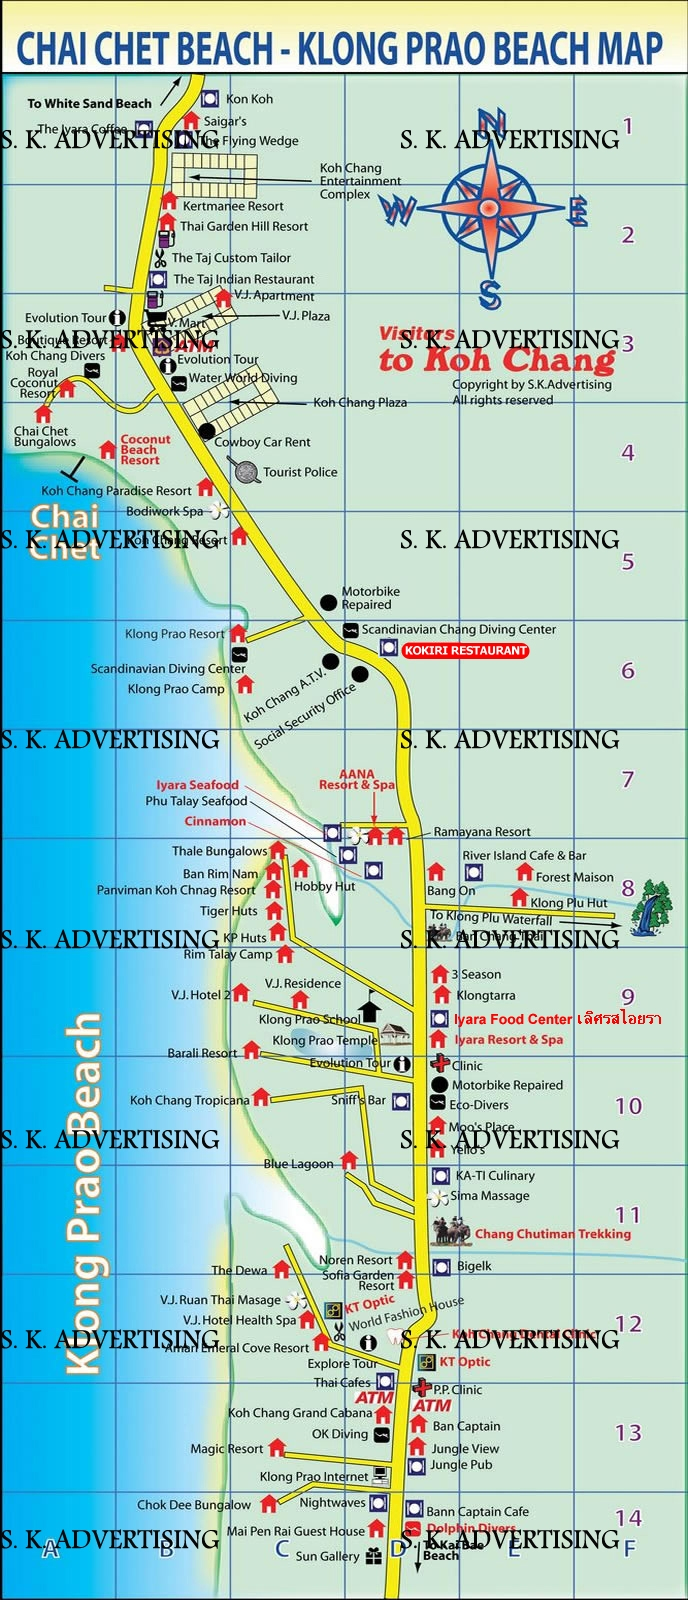 Chai Chet & Khlong Prao Beach Map